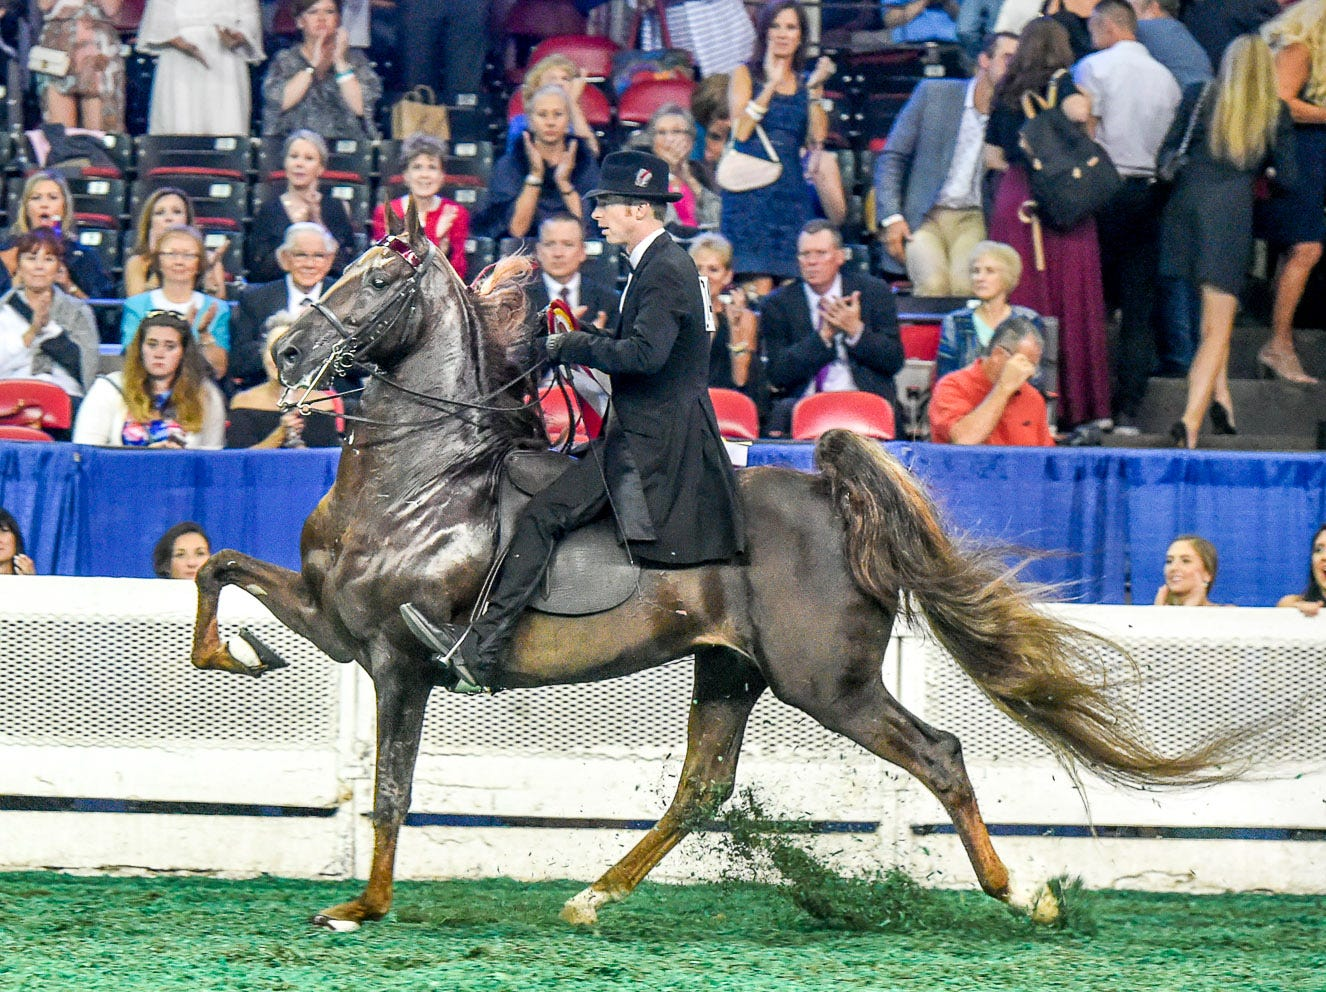 Two time winner of the 5 Gaited World's Grand Championship, Top Of The Mark receiving a strong reserve with trainer Tre Lee for Golden Creek Farm